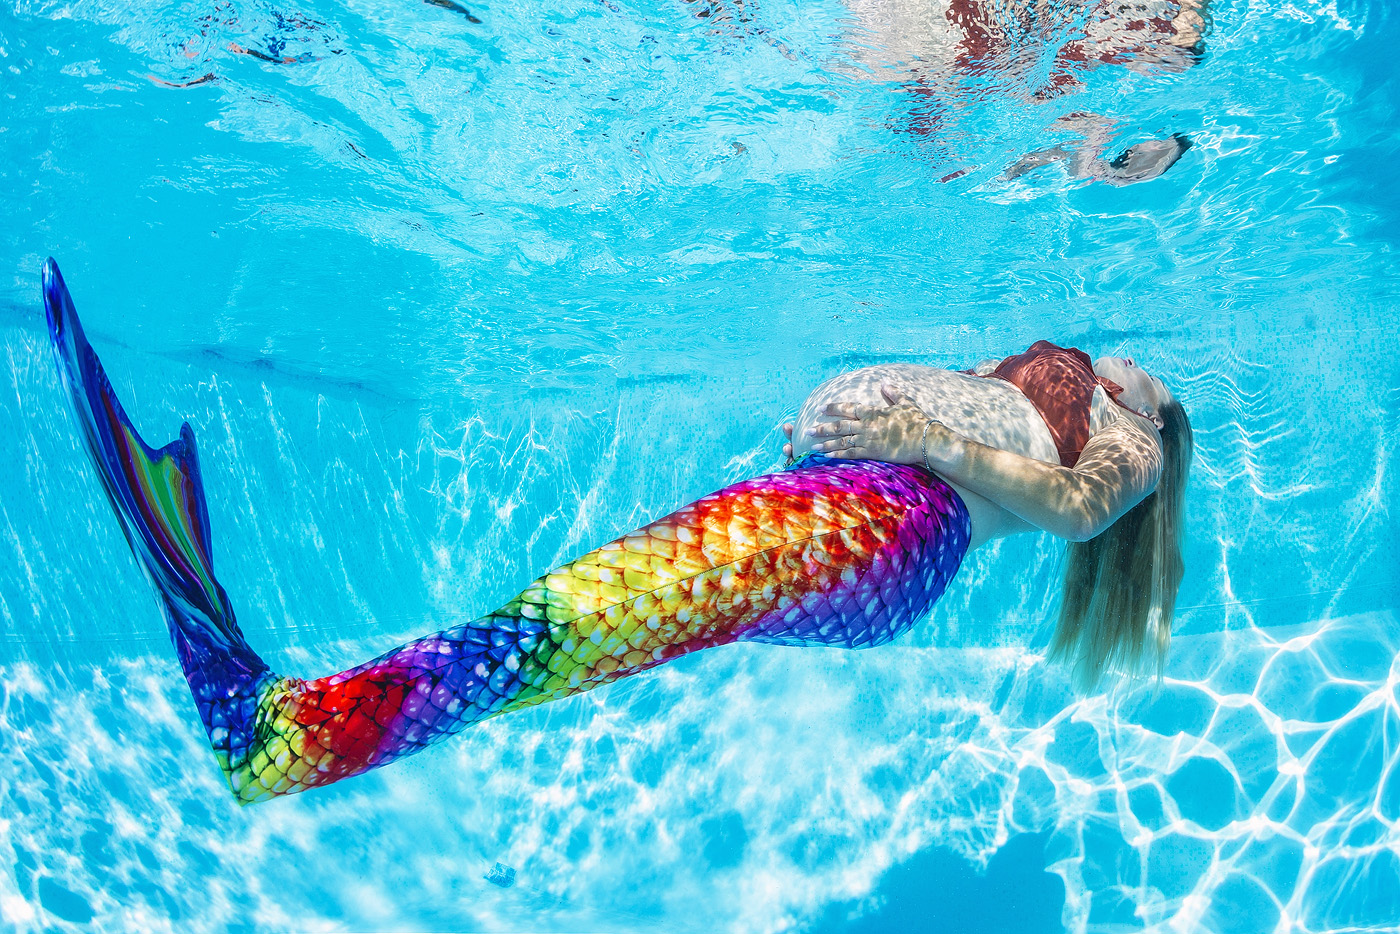 Lihi Griner mermaid - 26.09